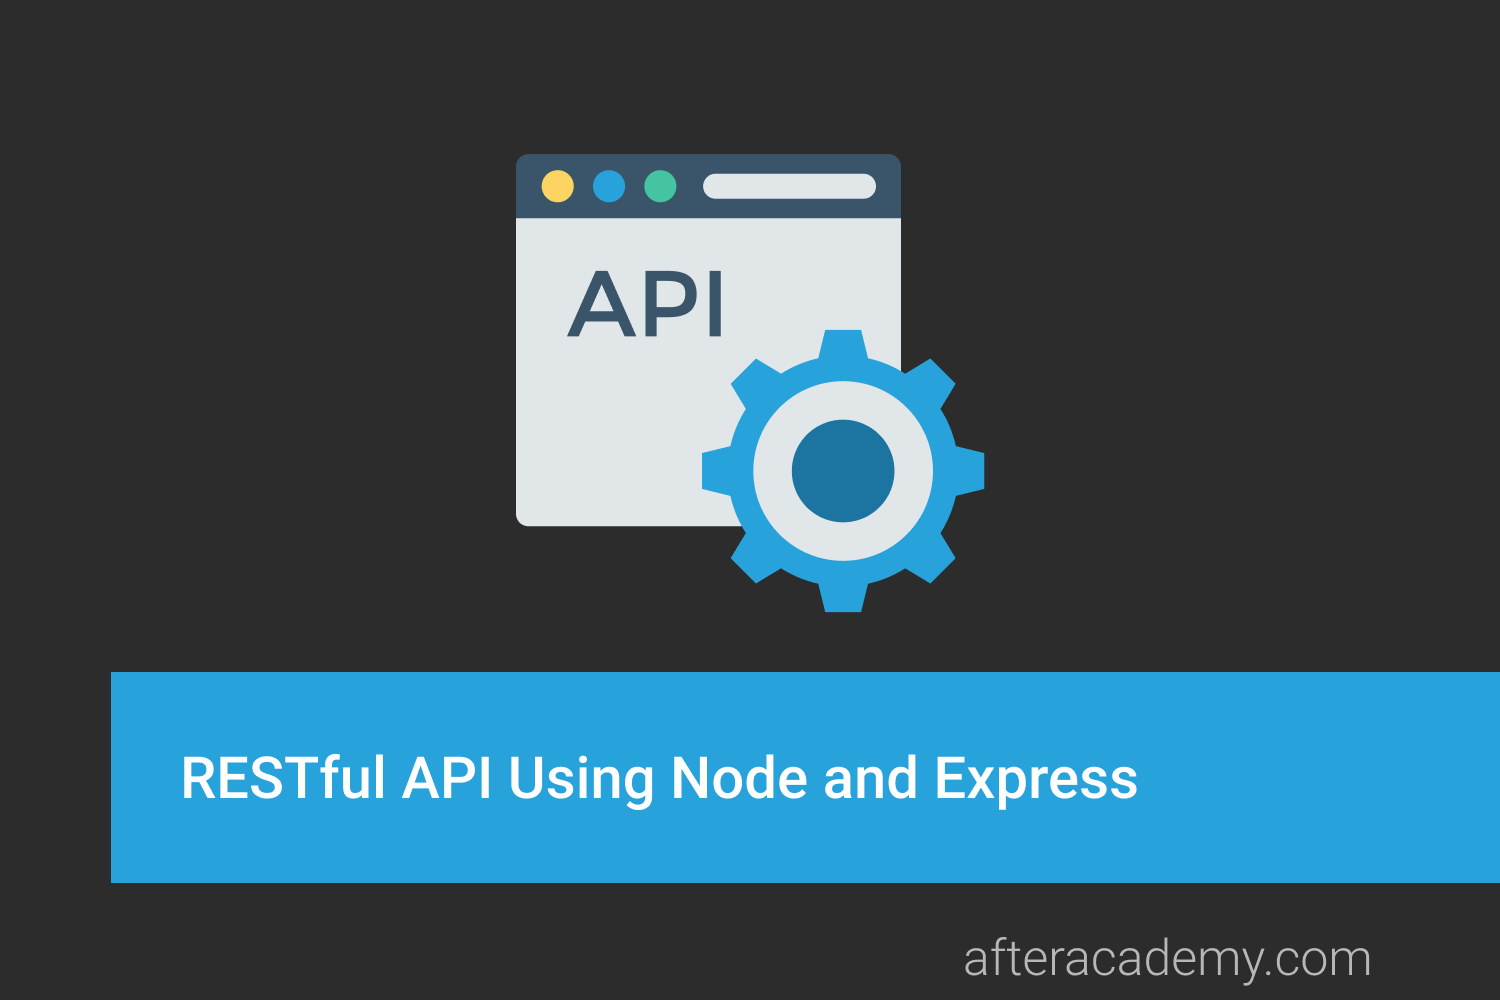 RESTful API Using Node and Express